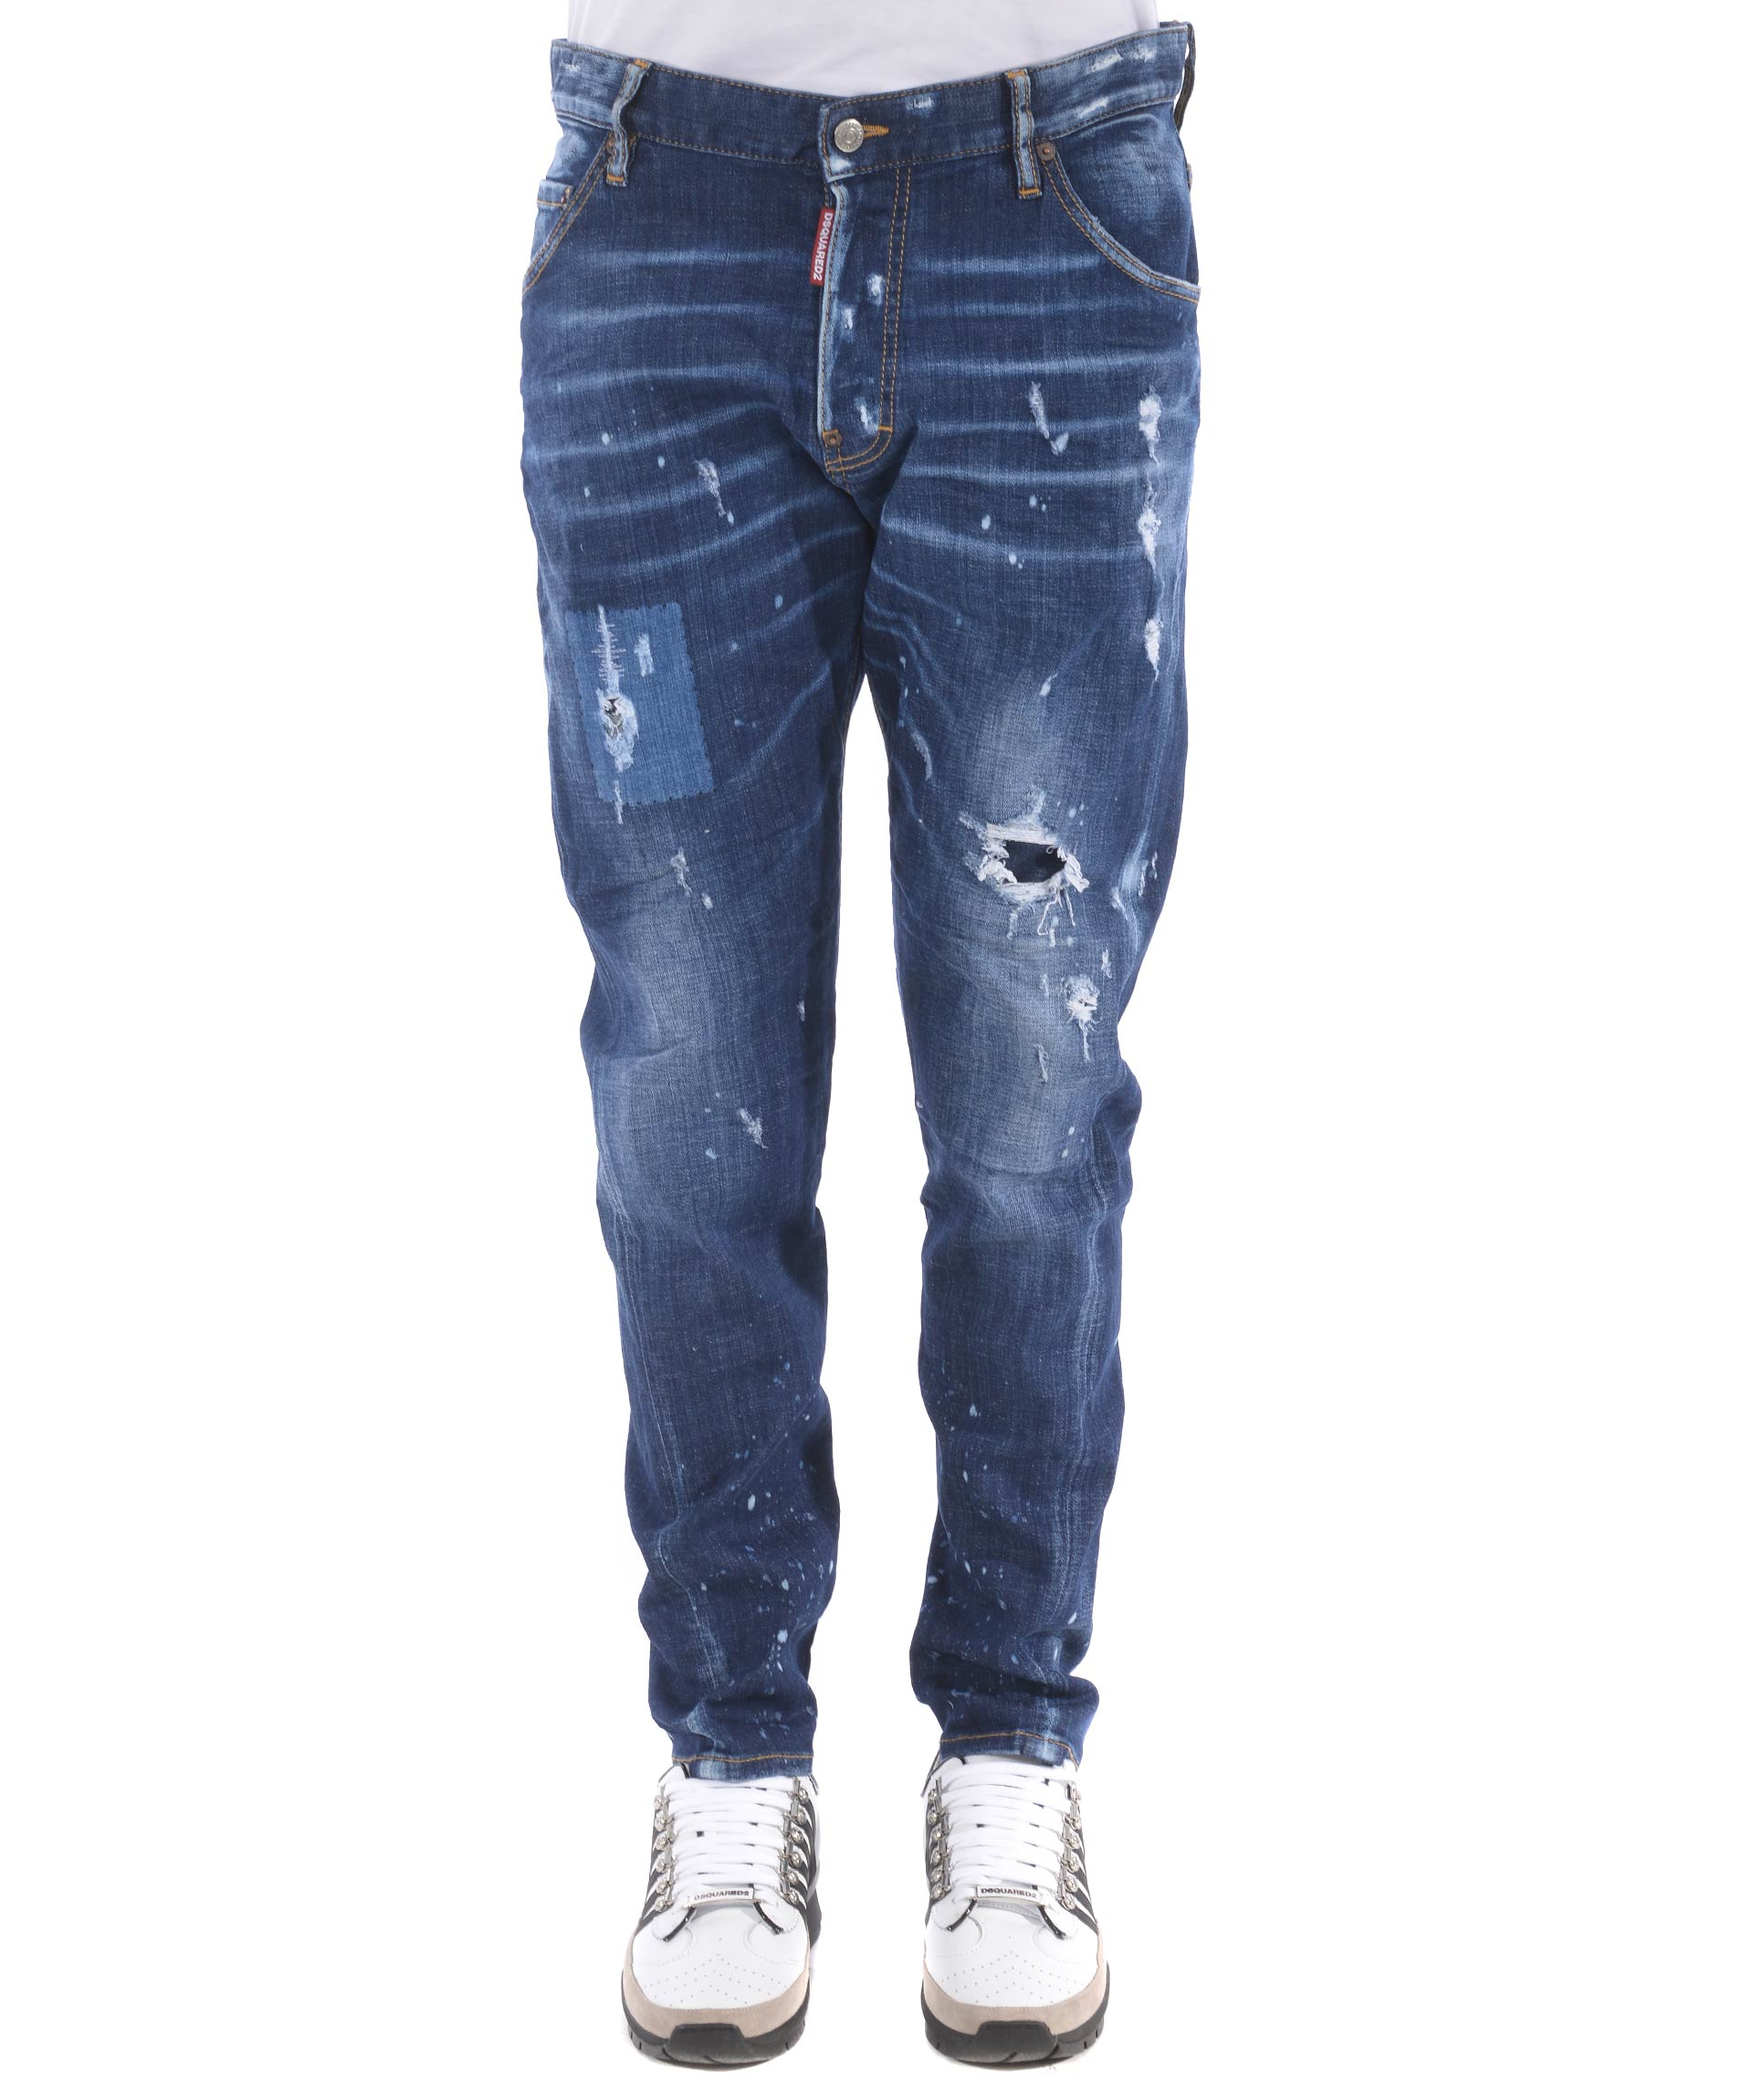 on sale 08be7 48a53 Jeans Dsquared2